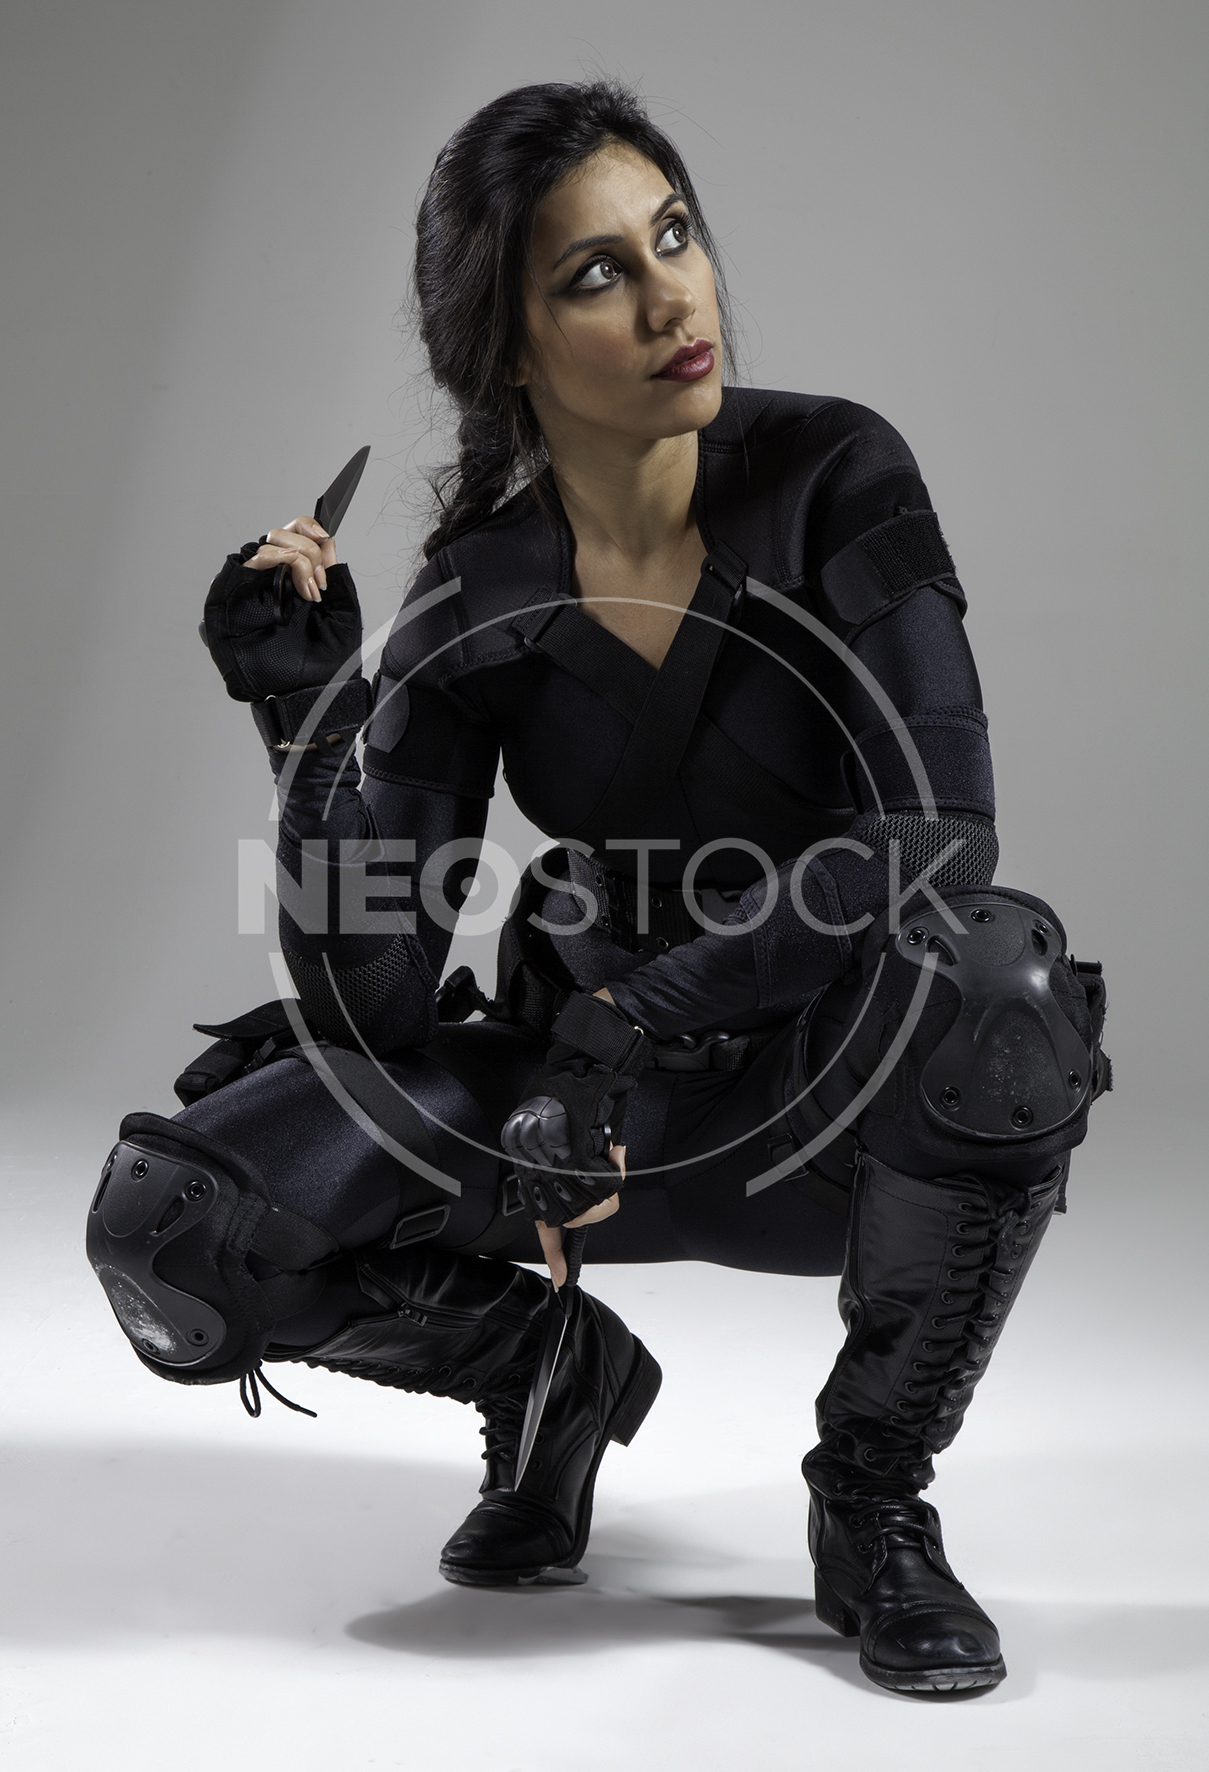 NeoStock - Nisha Future Cop III - Stock Photography